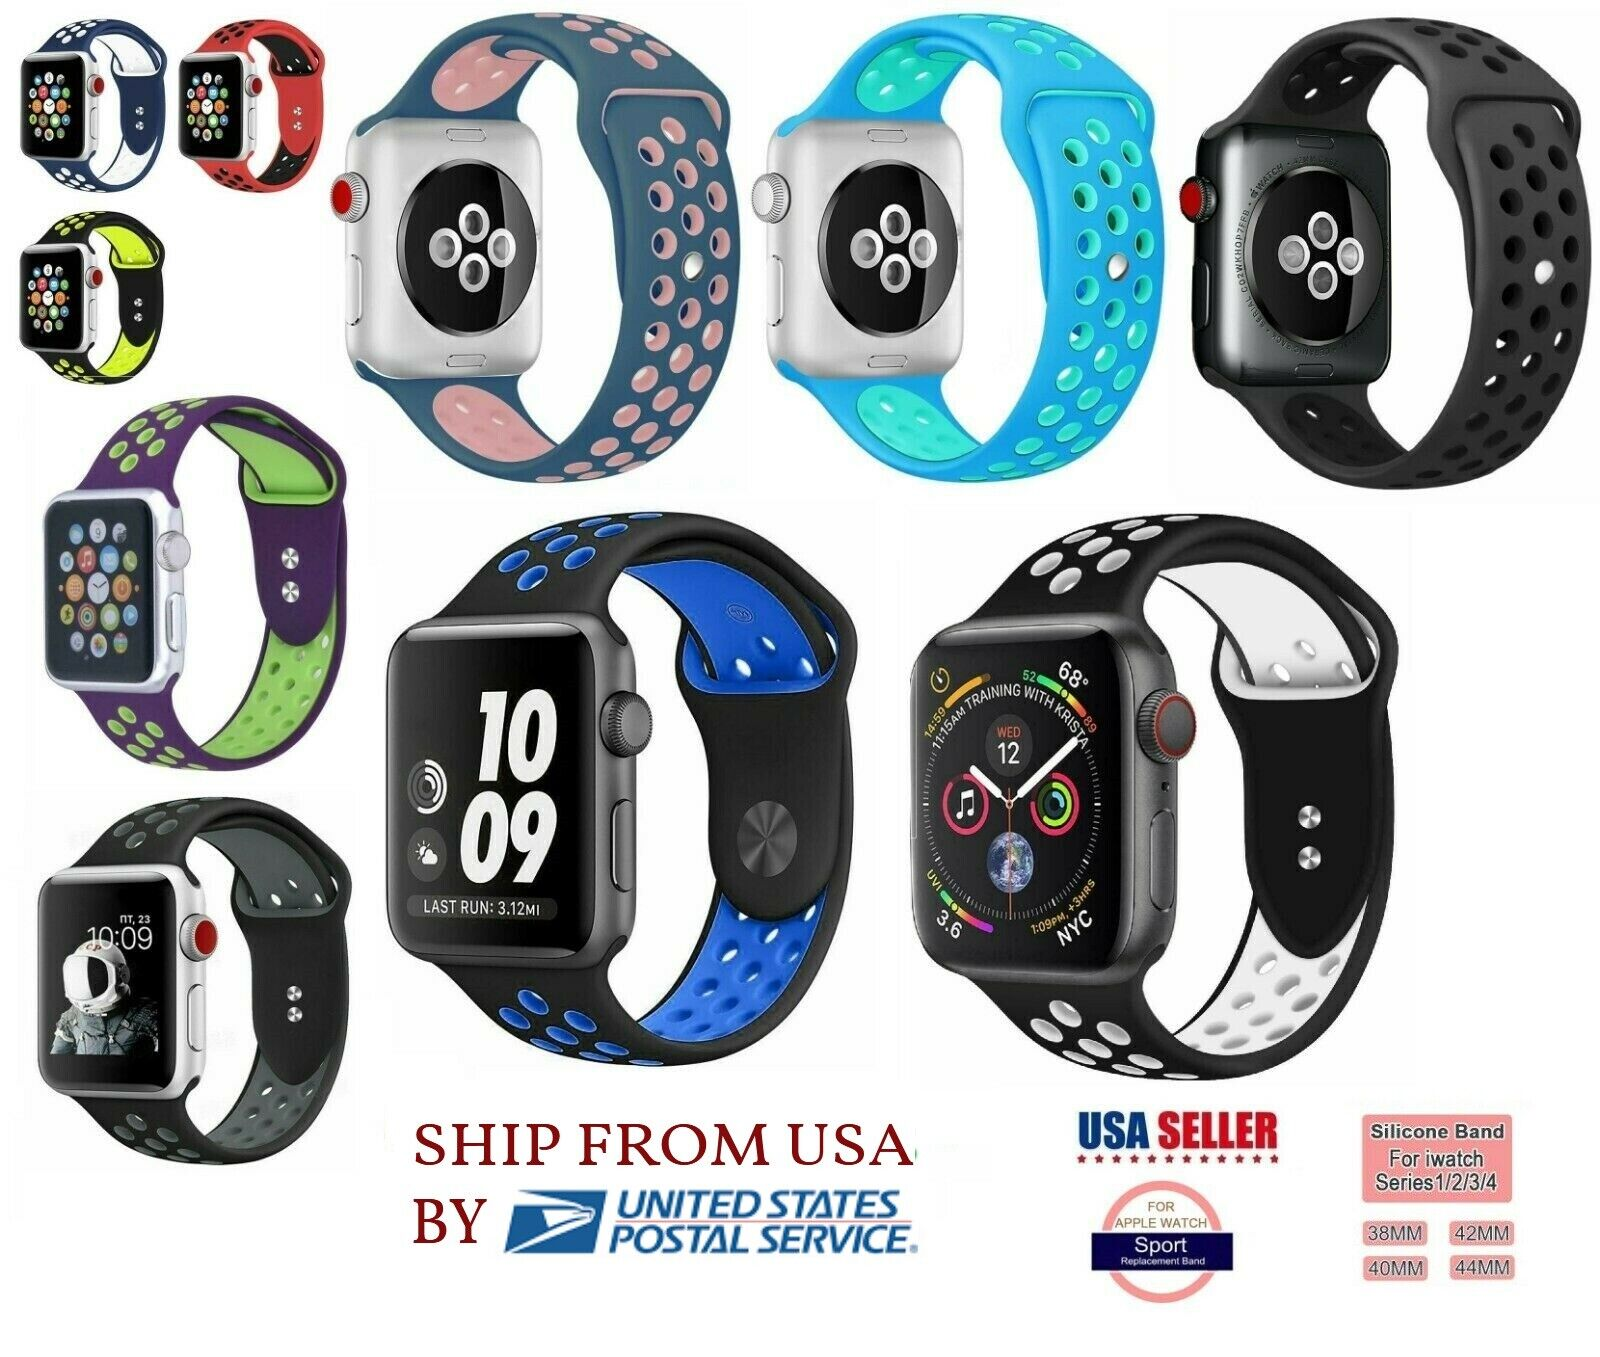 Ipm 38 Mm Soft Silicone Replacement Sports Band For Apple Watch Antique White For Sale Online Ebay